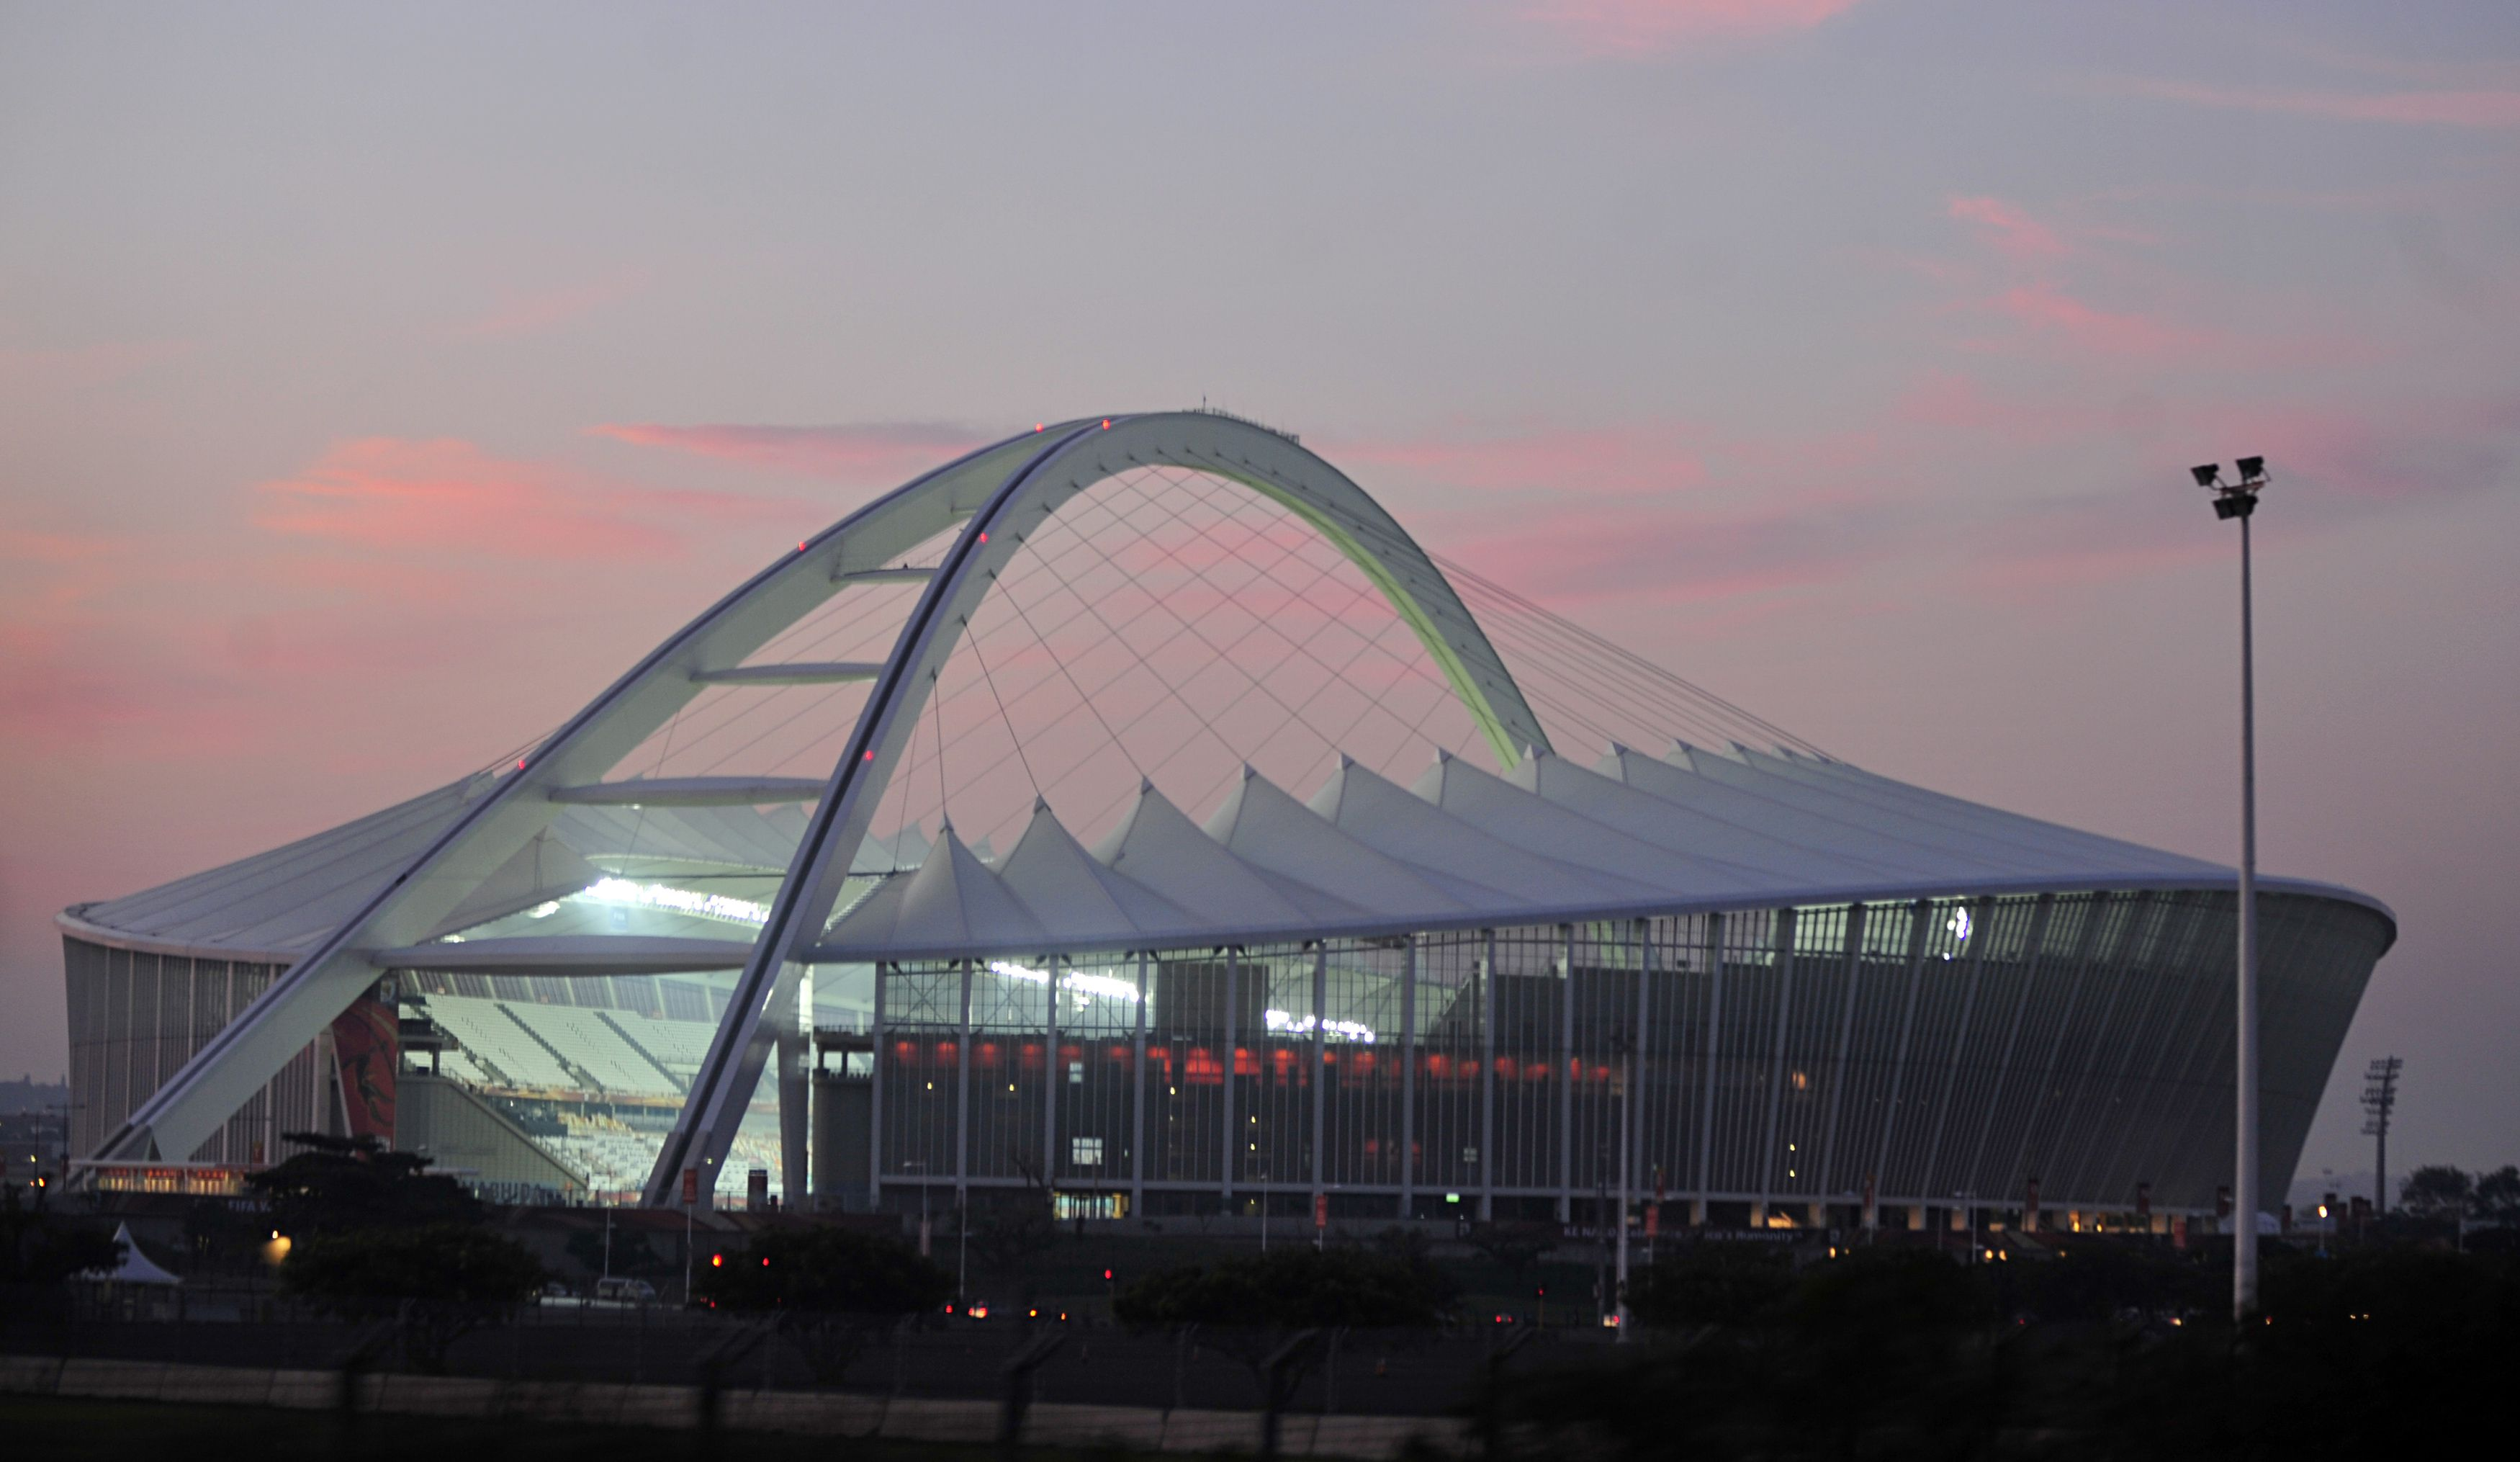 The Moses Mabhida Stadium is a stadium in Durban, South Africa, named after Moses Mabhida, a former General Secretary of the South African Communist Party. It is a multi-use stadium. It was one of the host stadiums for the 2010 FIFA World Cup. The stadium has a capacity of 62,760, during the World Cup and 54,000 afterwards.